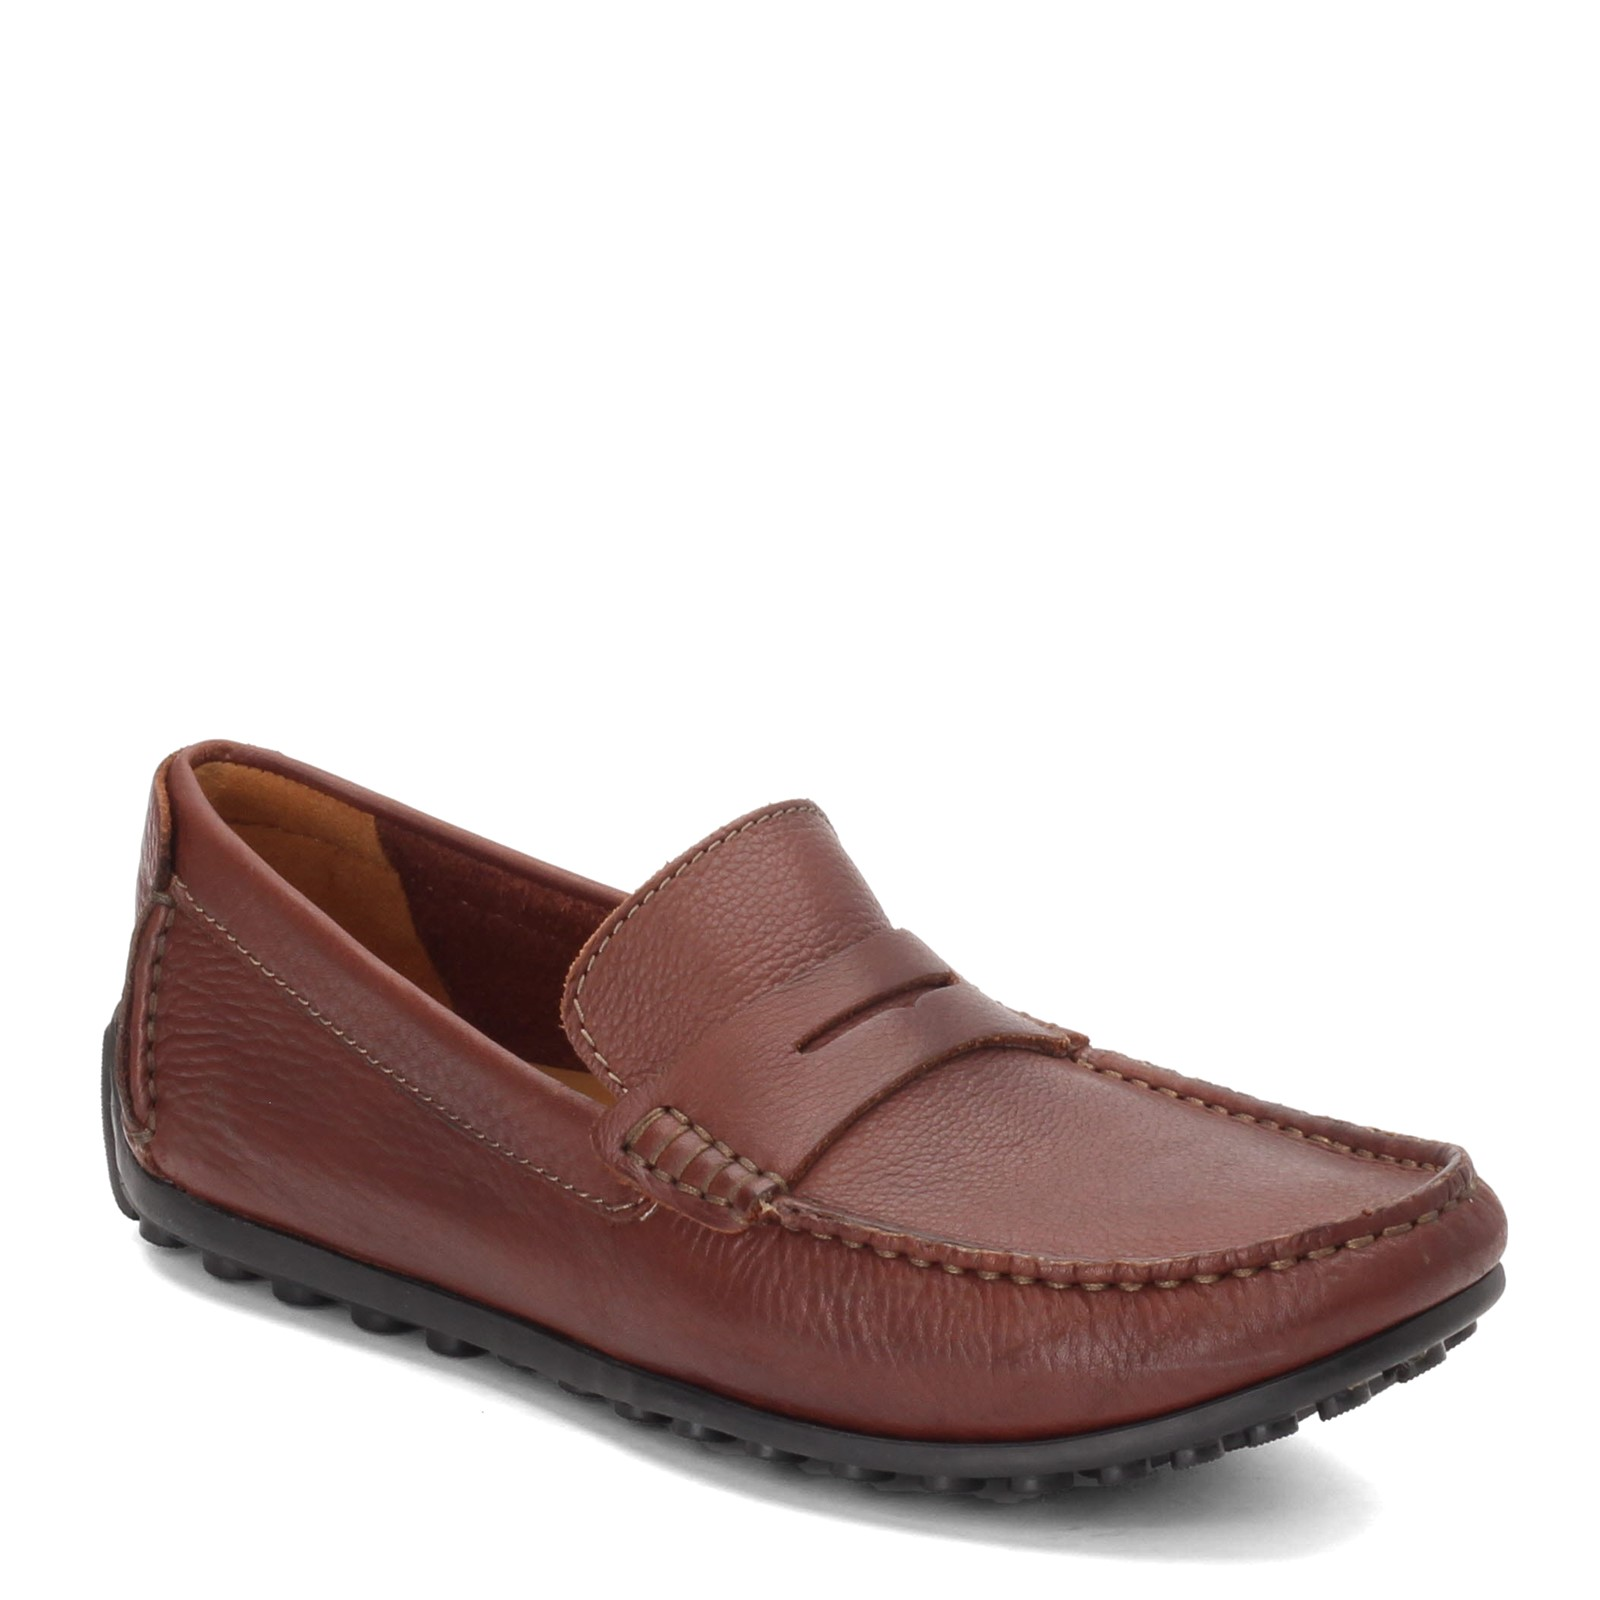 Men's Clarks, Hamilton Way Slip On Loafer